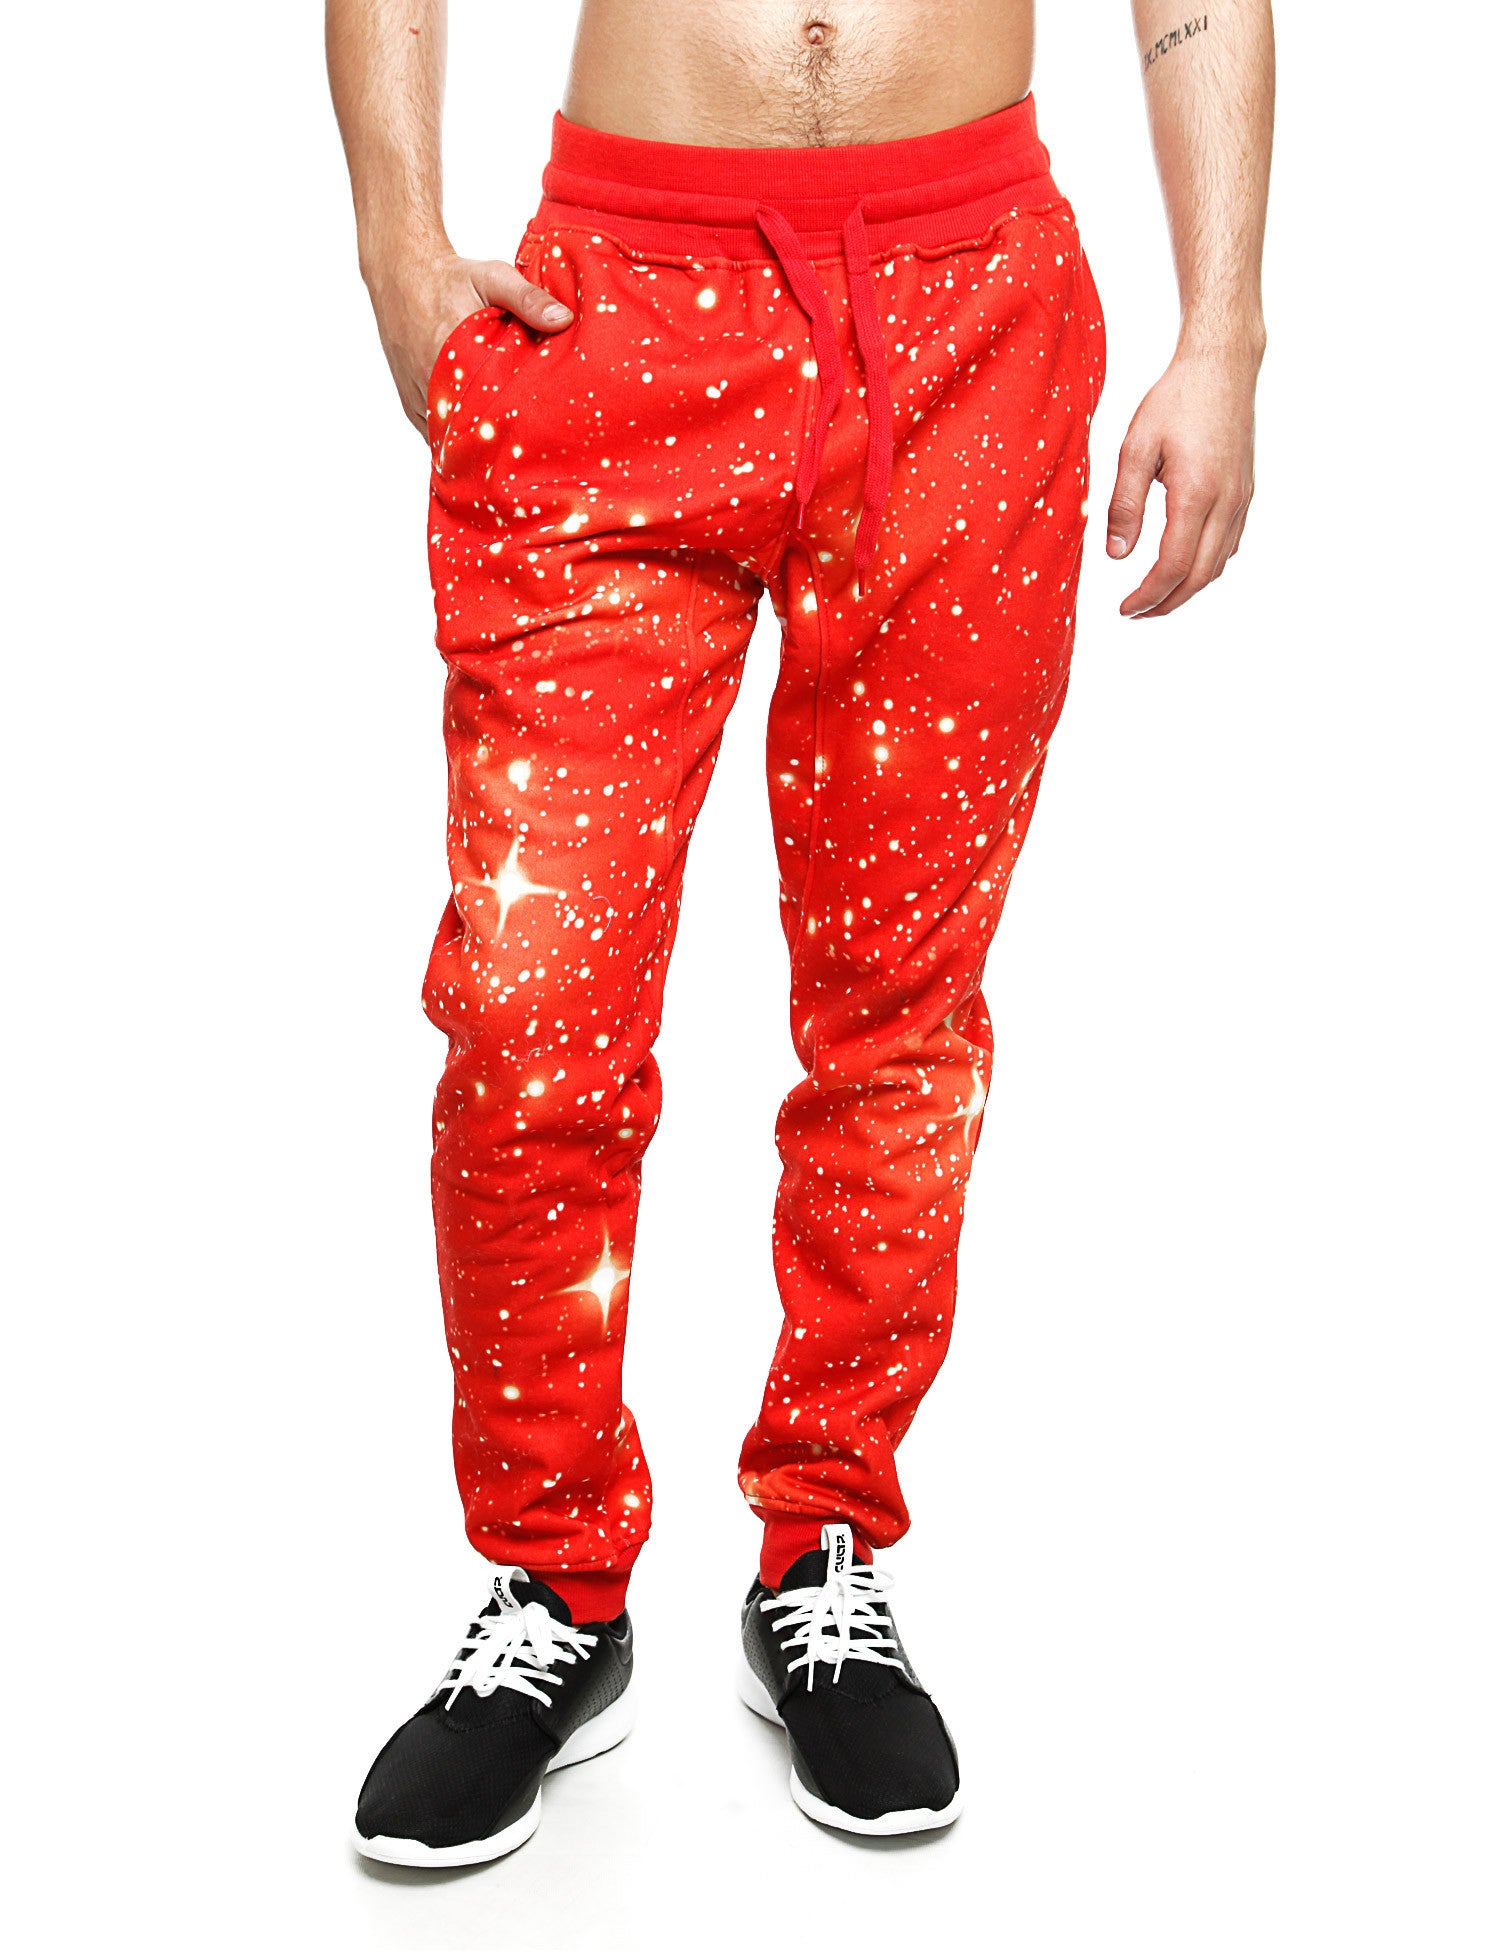 Imperious Galaxy All Over Sweatpant FP563 Red